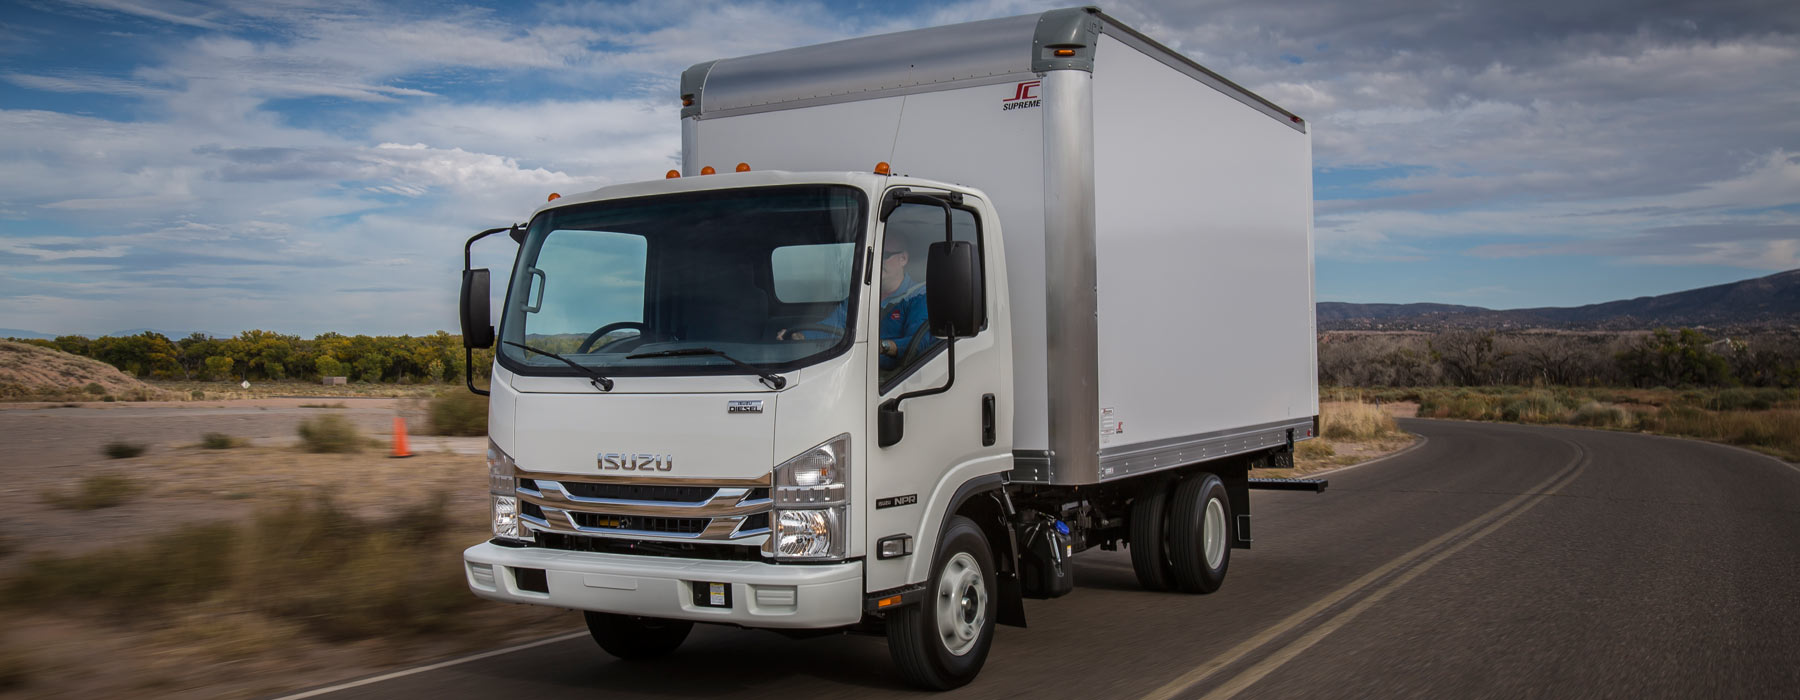 Isuzu Light Duty Trucks